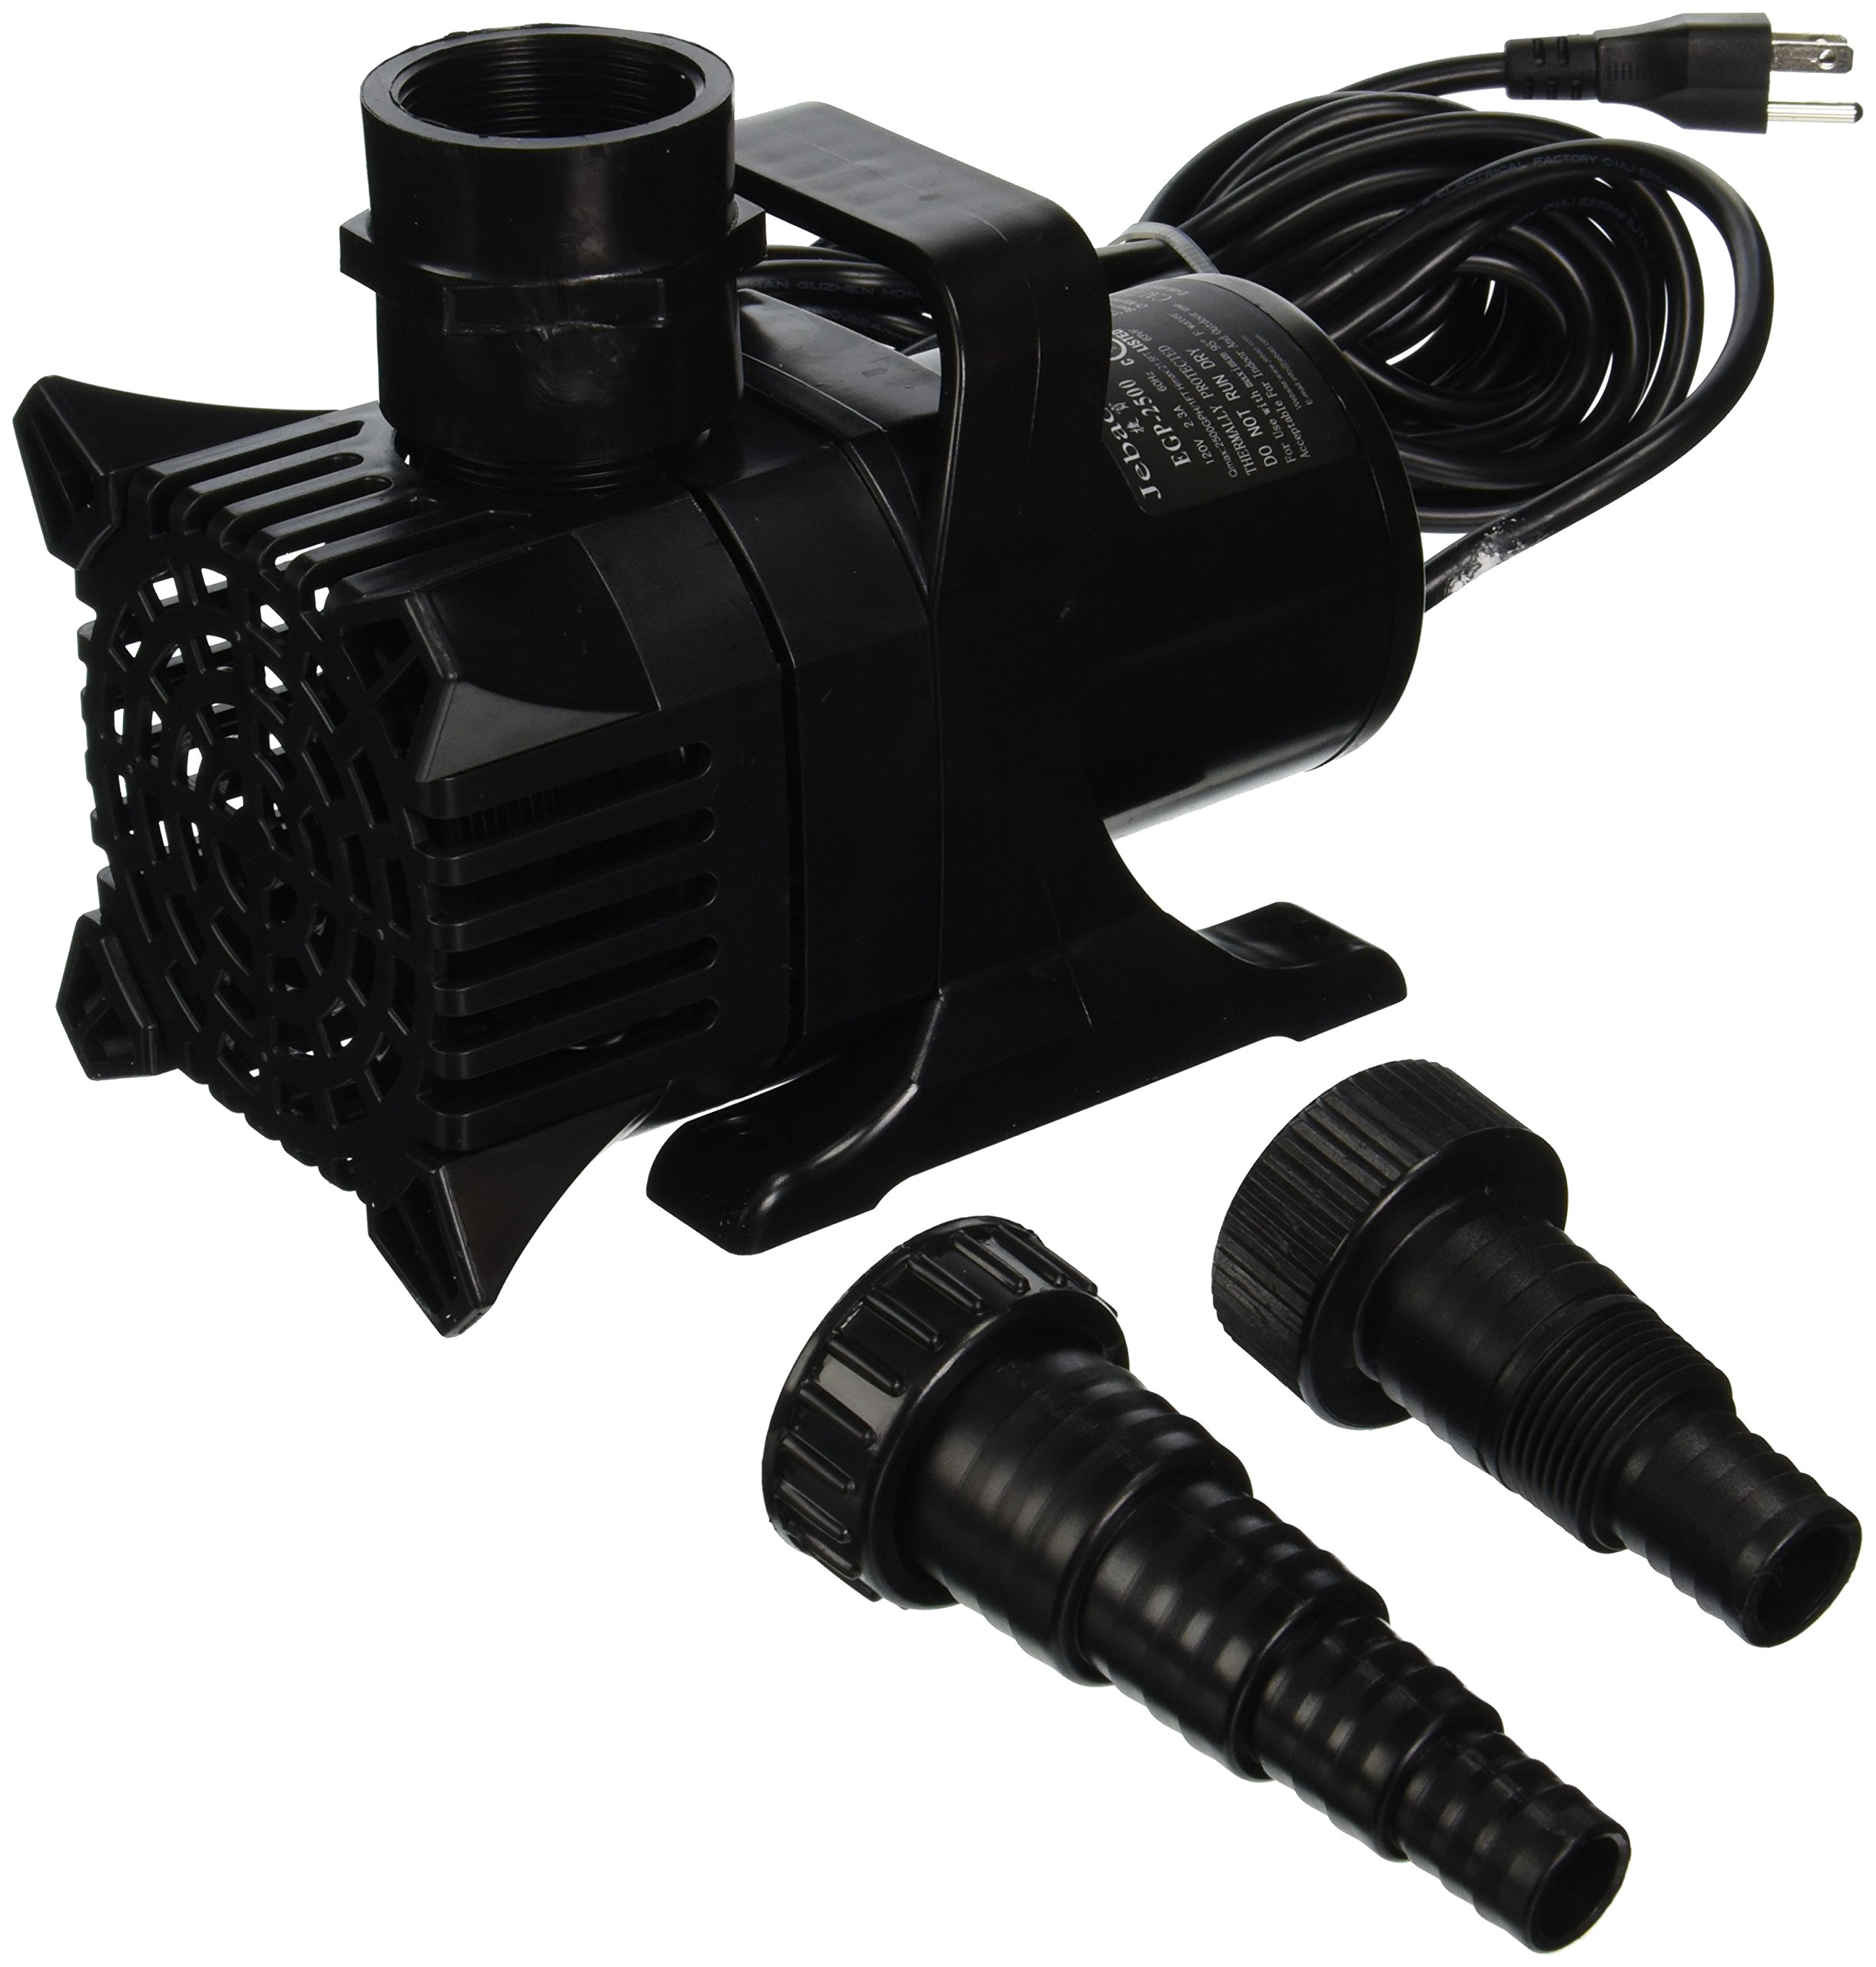 Algreen MaxFlo 9000 to 2500 GPH Pond and Waterfall Pump for Gardening by Algreen